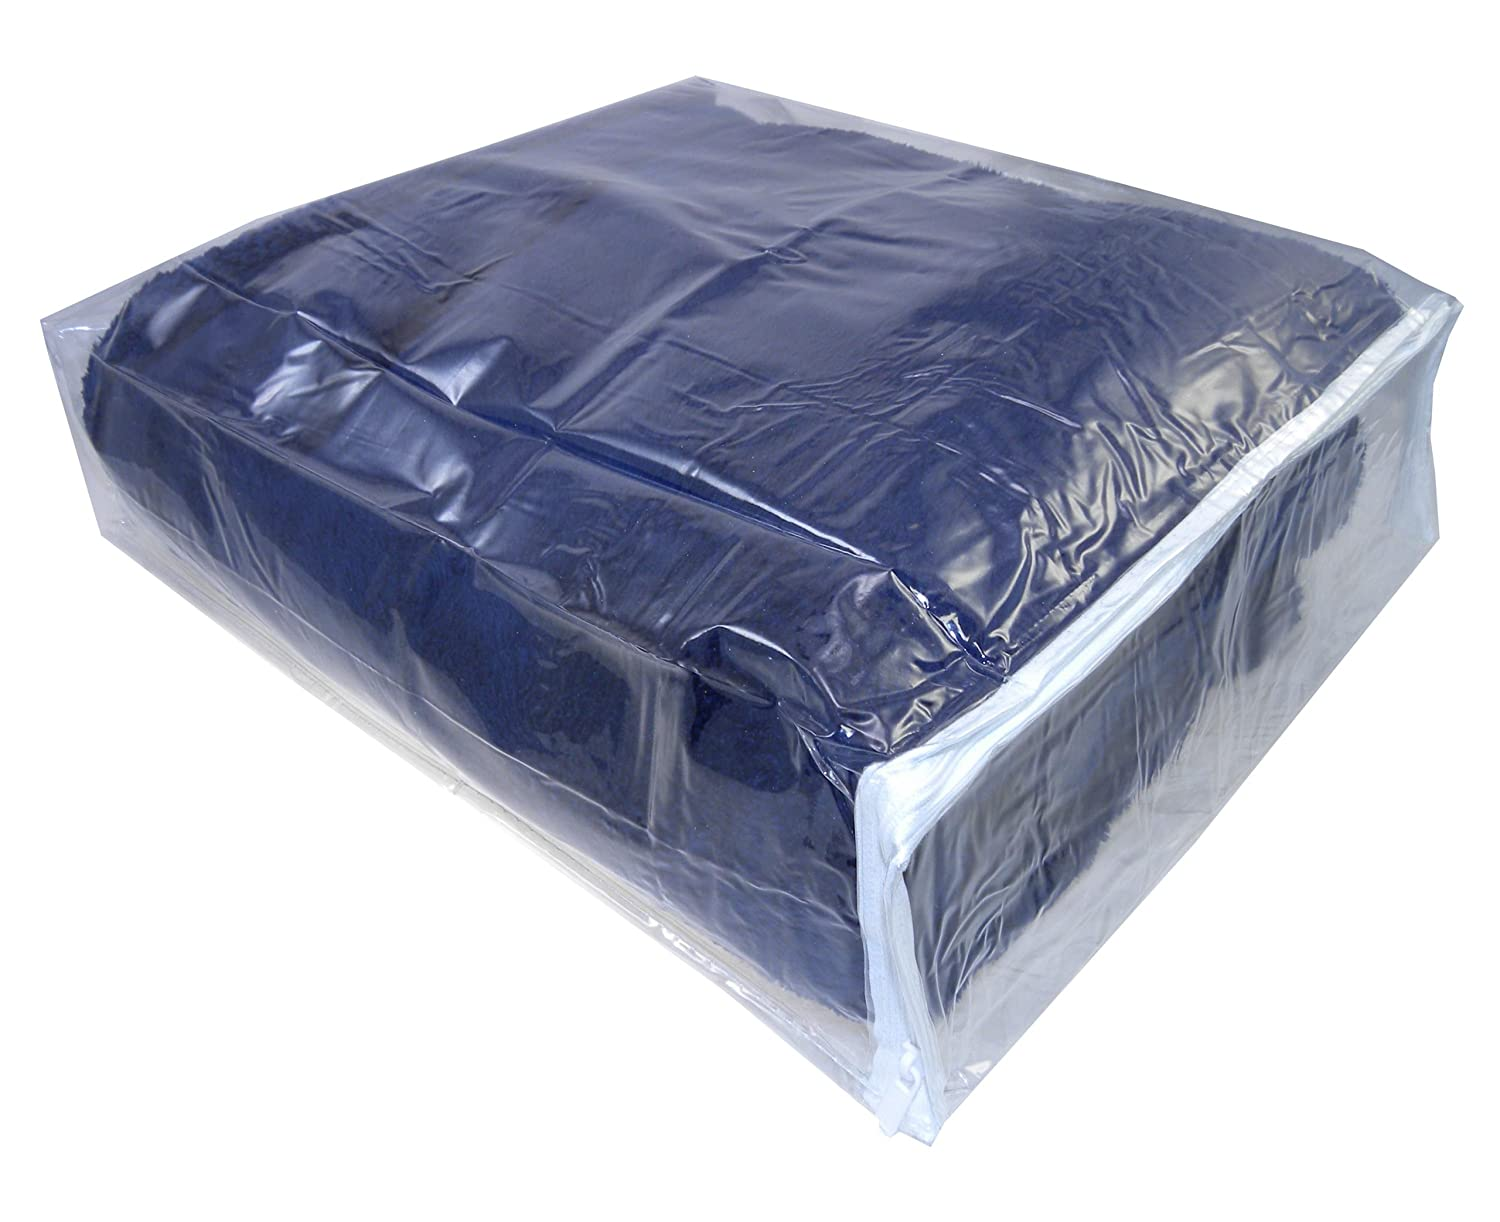 Amazon.com Clear Vinyl Zippered Storage Bags 15x18x4 Inch Set of 5 AK Plastics by AntiqueKitchen Home u0026 Kitchen  sc 1 st  Amazon.com & Amazon.com: Clear Vinyl Zippered Storage Bags 15x18x4 Inch Set of 5 ...